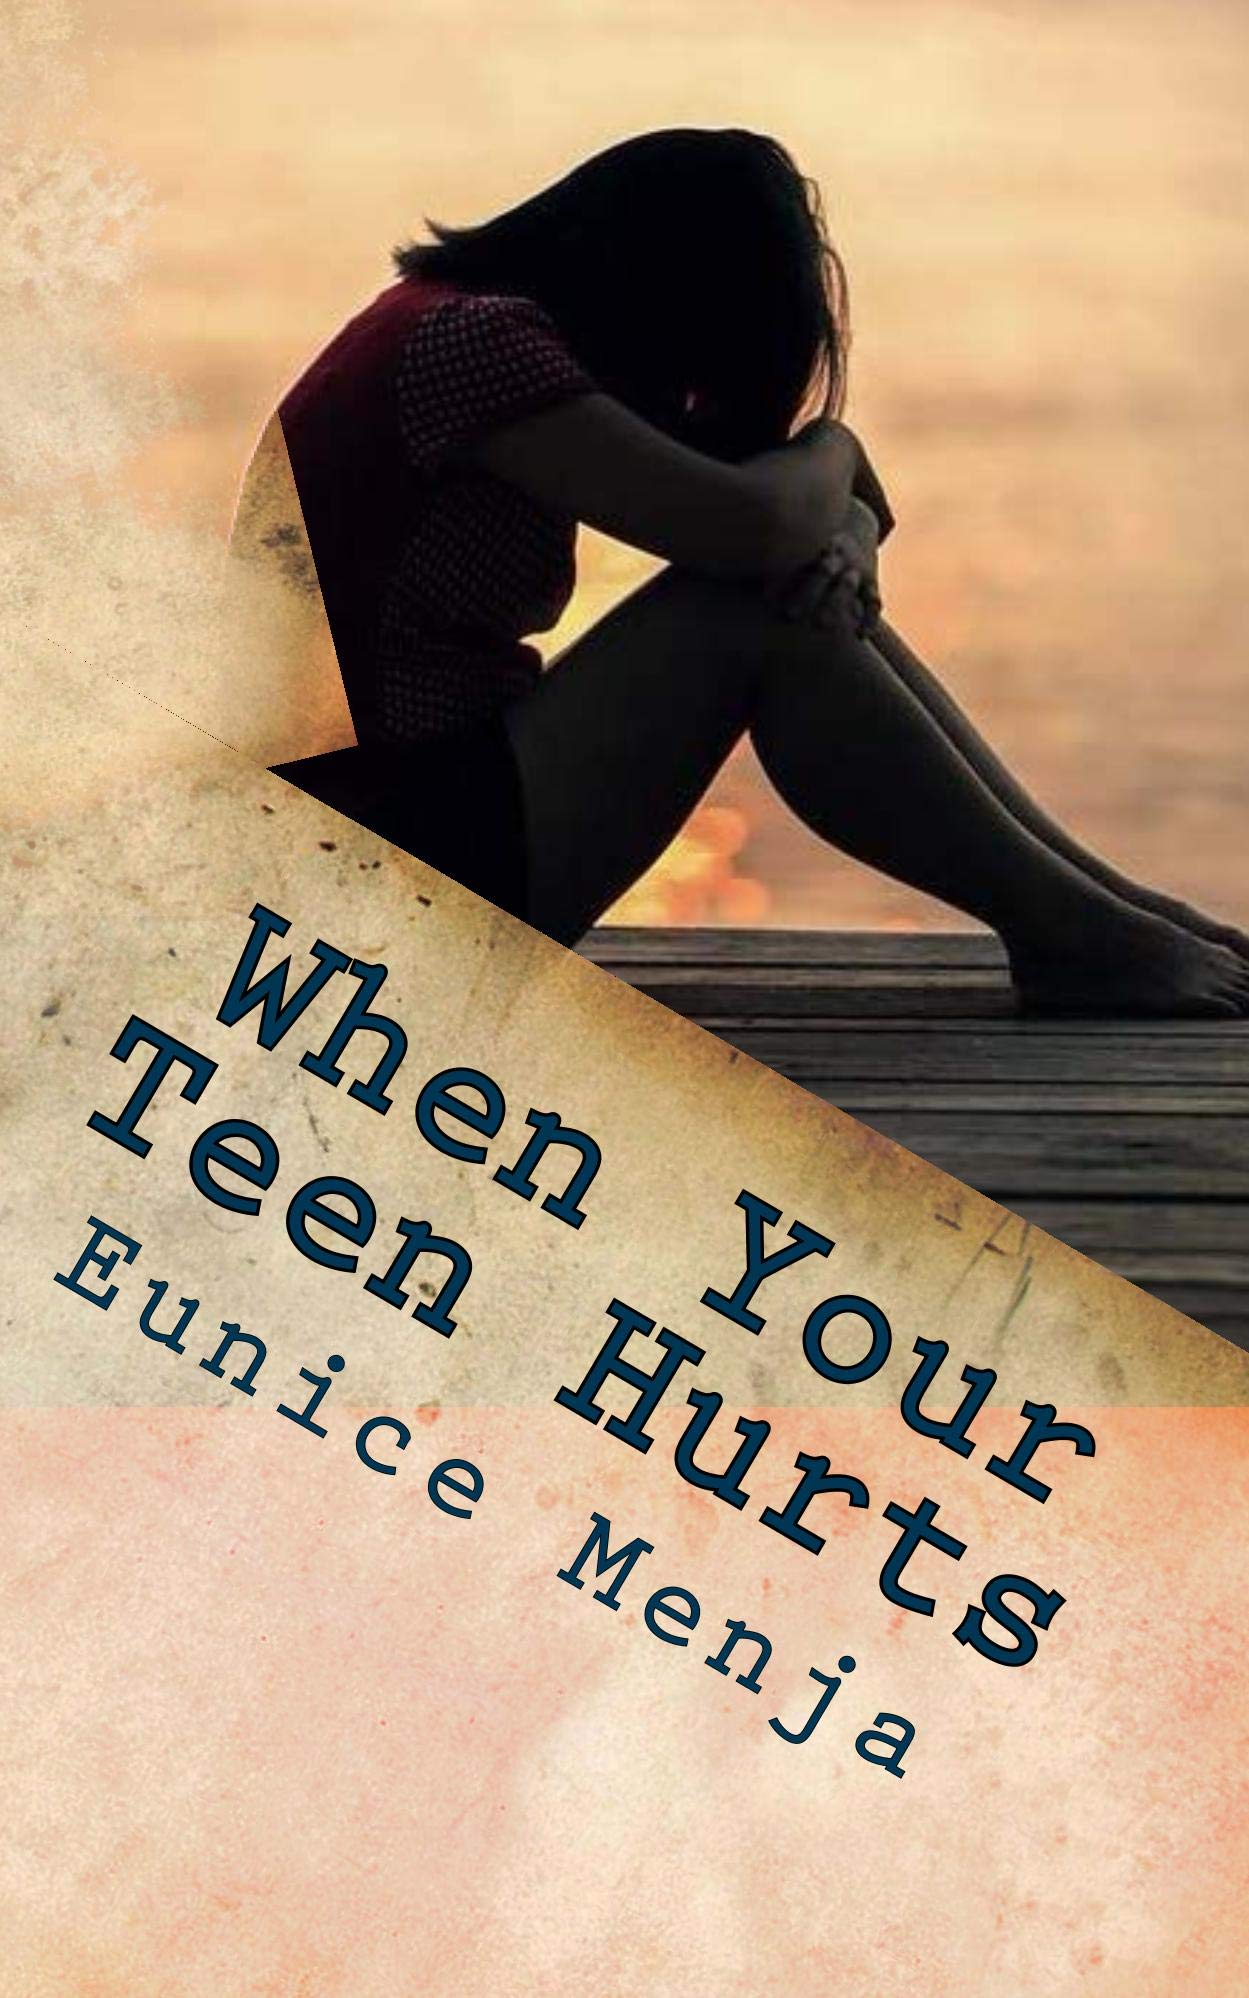 When Your Teen Hurts: Parents' guide to detect depression and prevent suicide